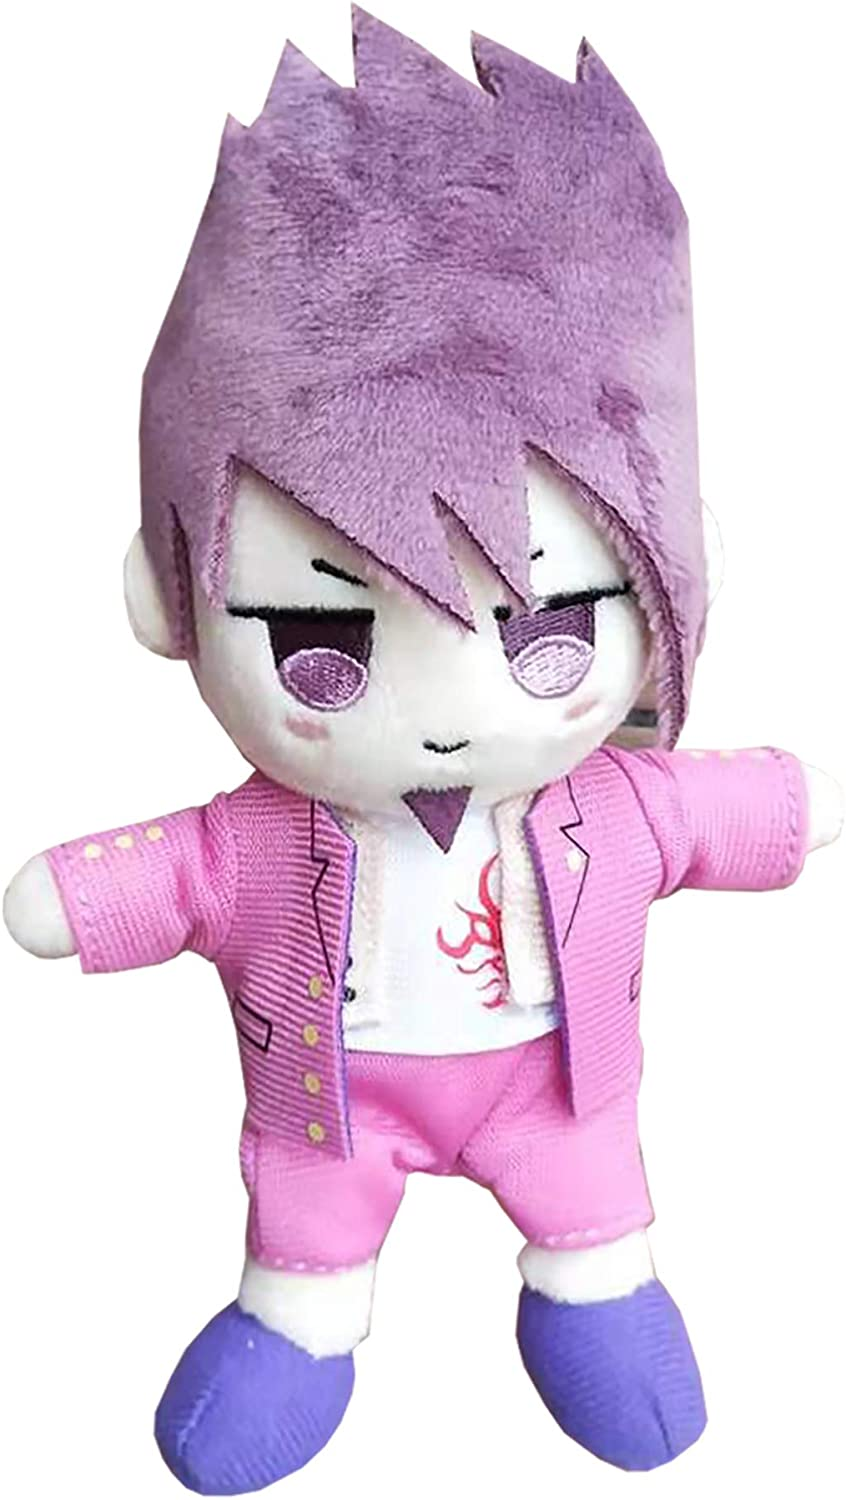 Plush Toy Kaito Momota Anime C Soft Doll Character Cash Popular brand in the world special price Stuffed